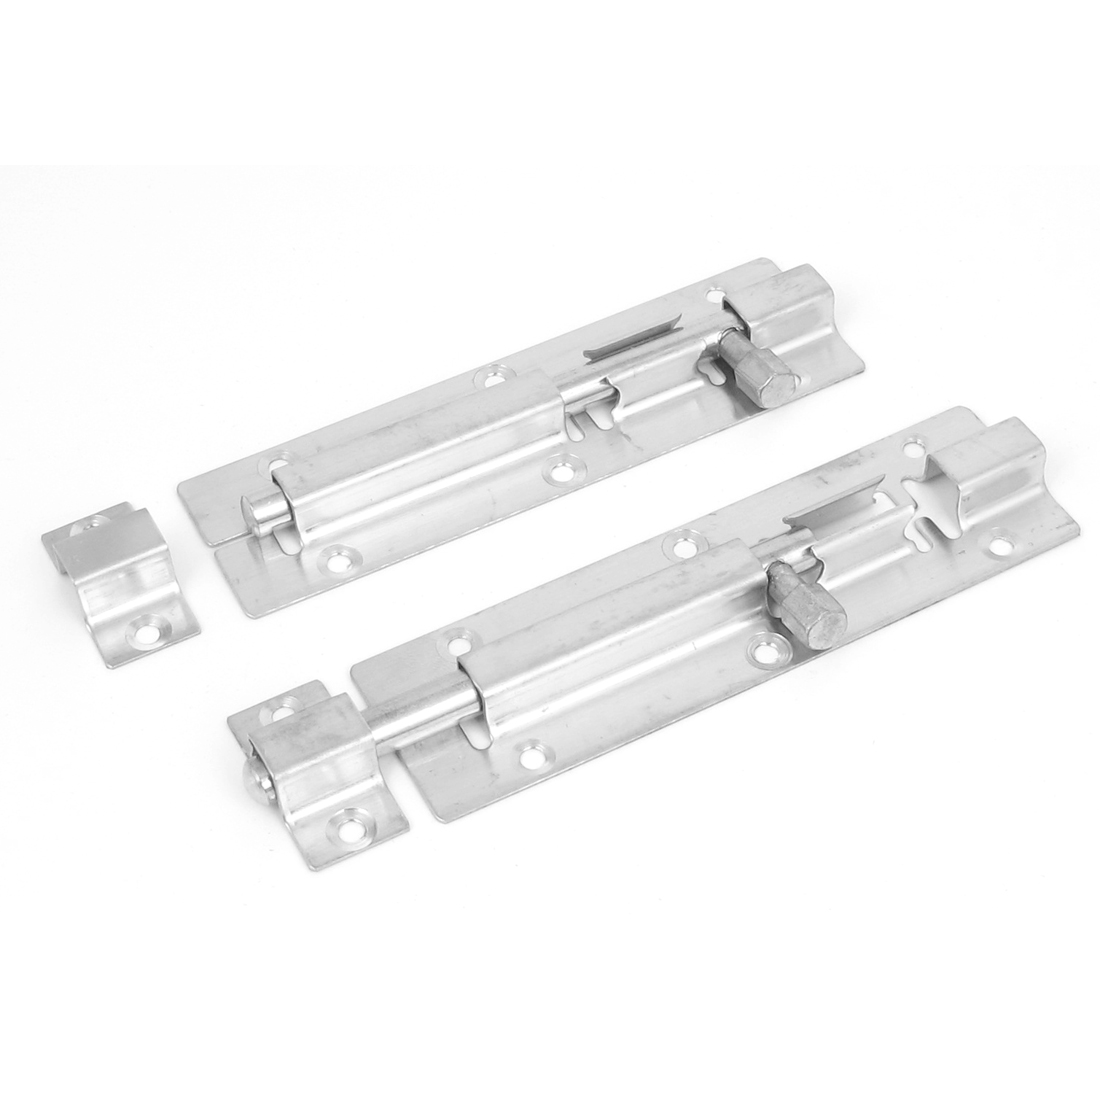 Cabinet Door Window Stainless Steel Security Lock Barrel Bolt Hardware 2pcs